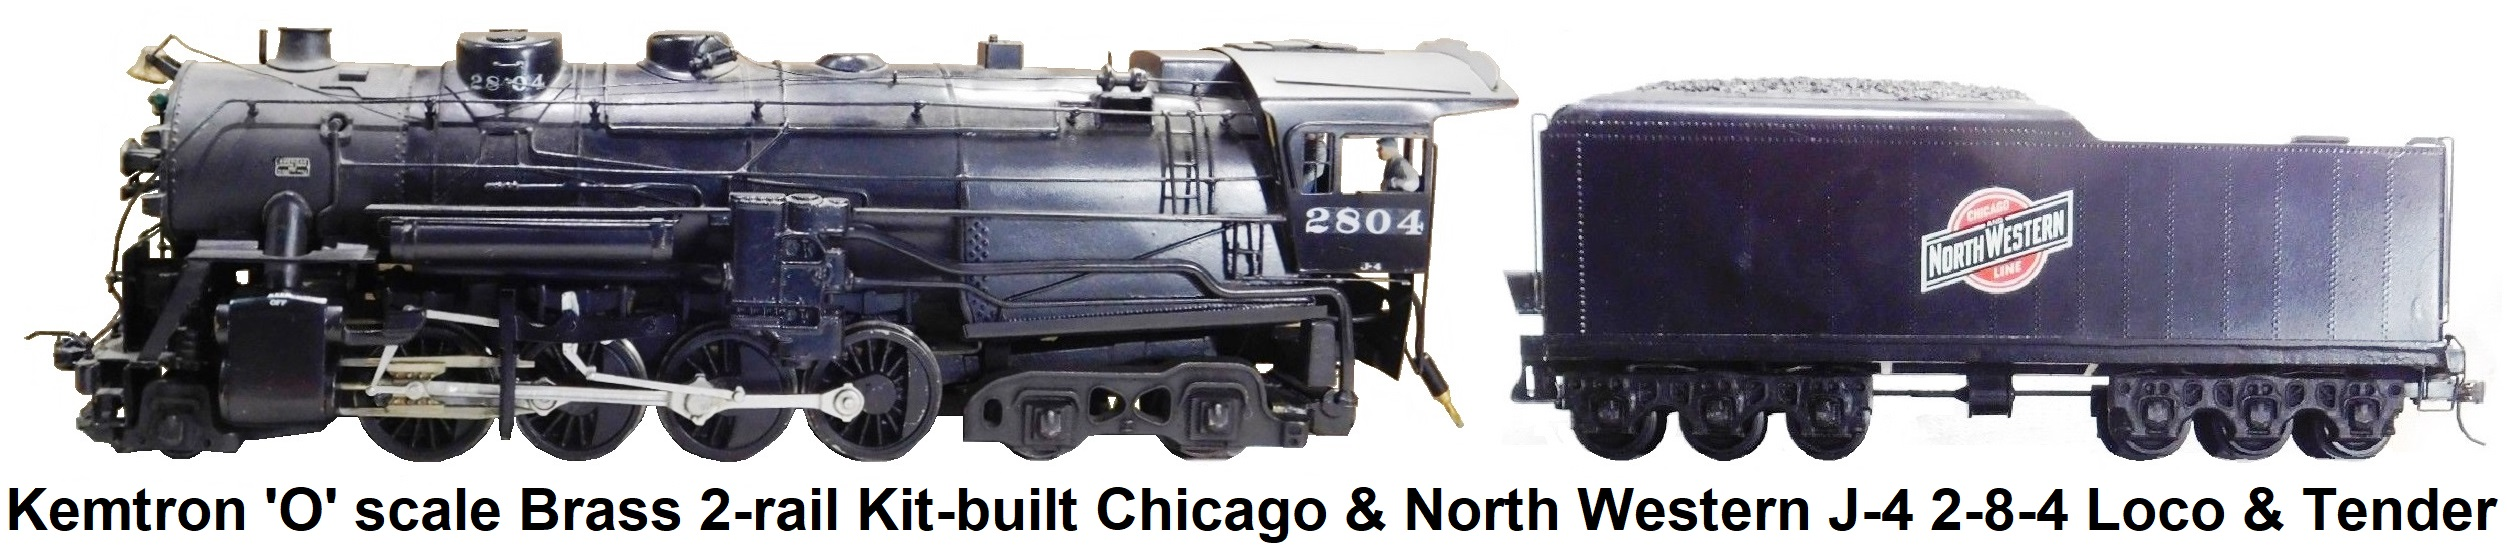 Kemtron 2-rail 'O' scale Chicago and North Western J-4 2-8-4 Kit-built Brass loco & tender